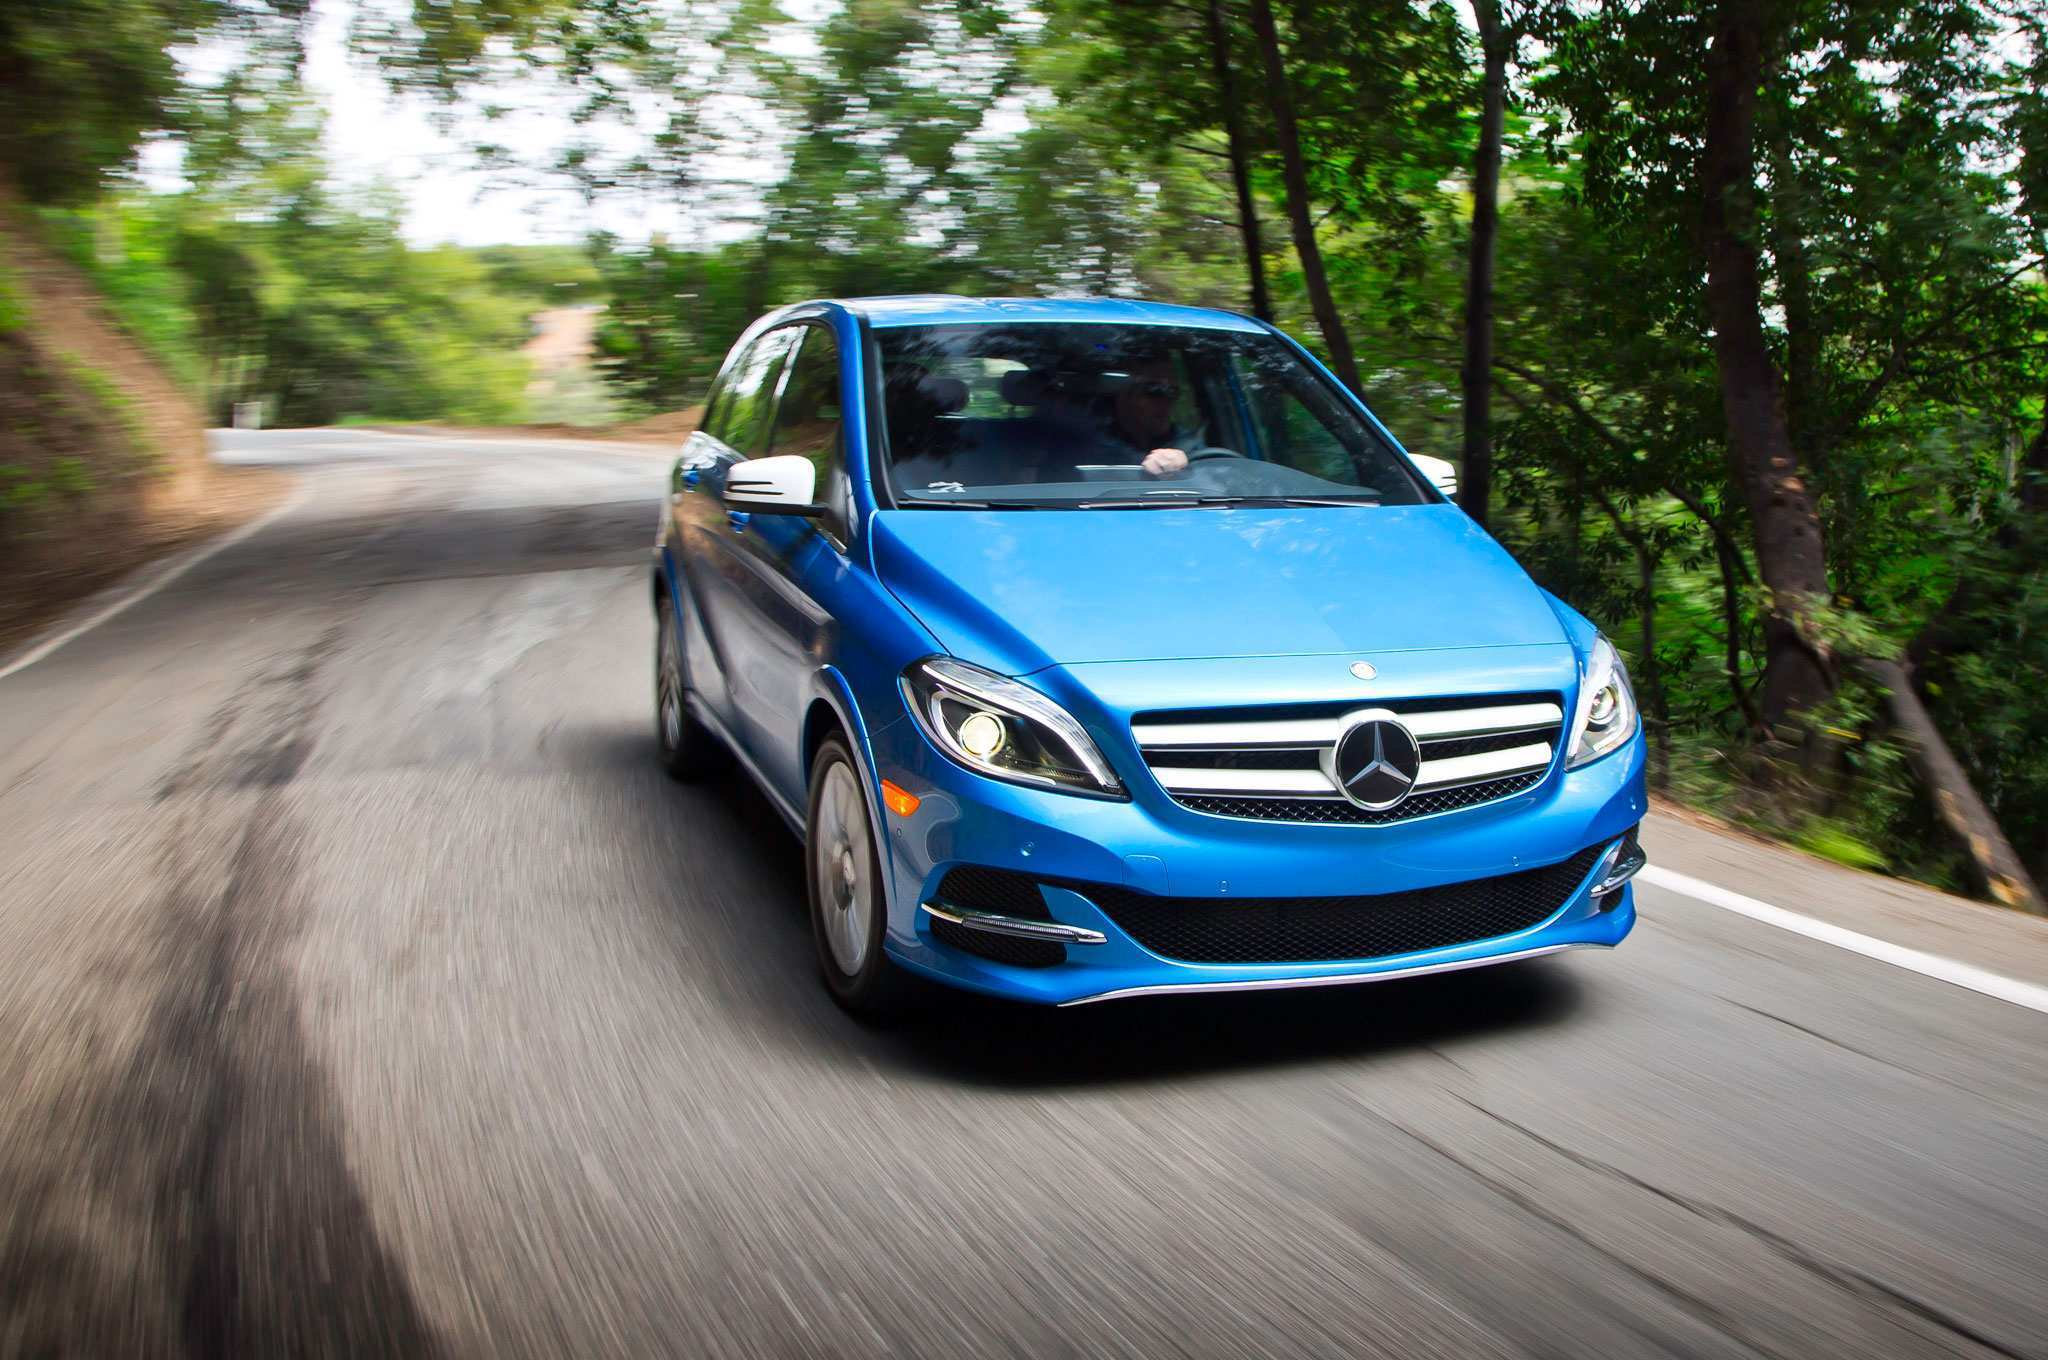 43 Gallery of 2020 Mercedes B250 Spy Shoot with 2020 Mercedes B250